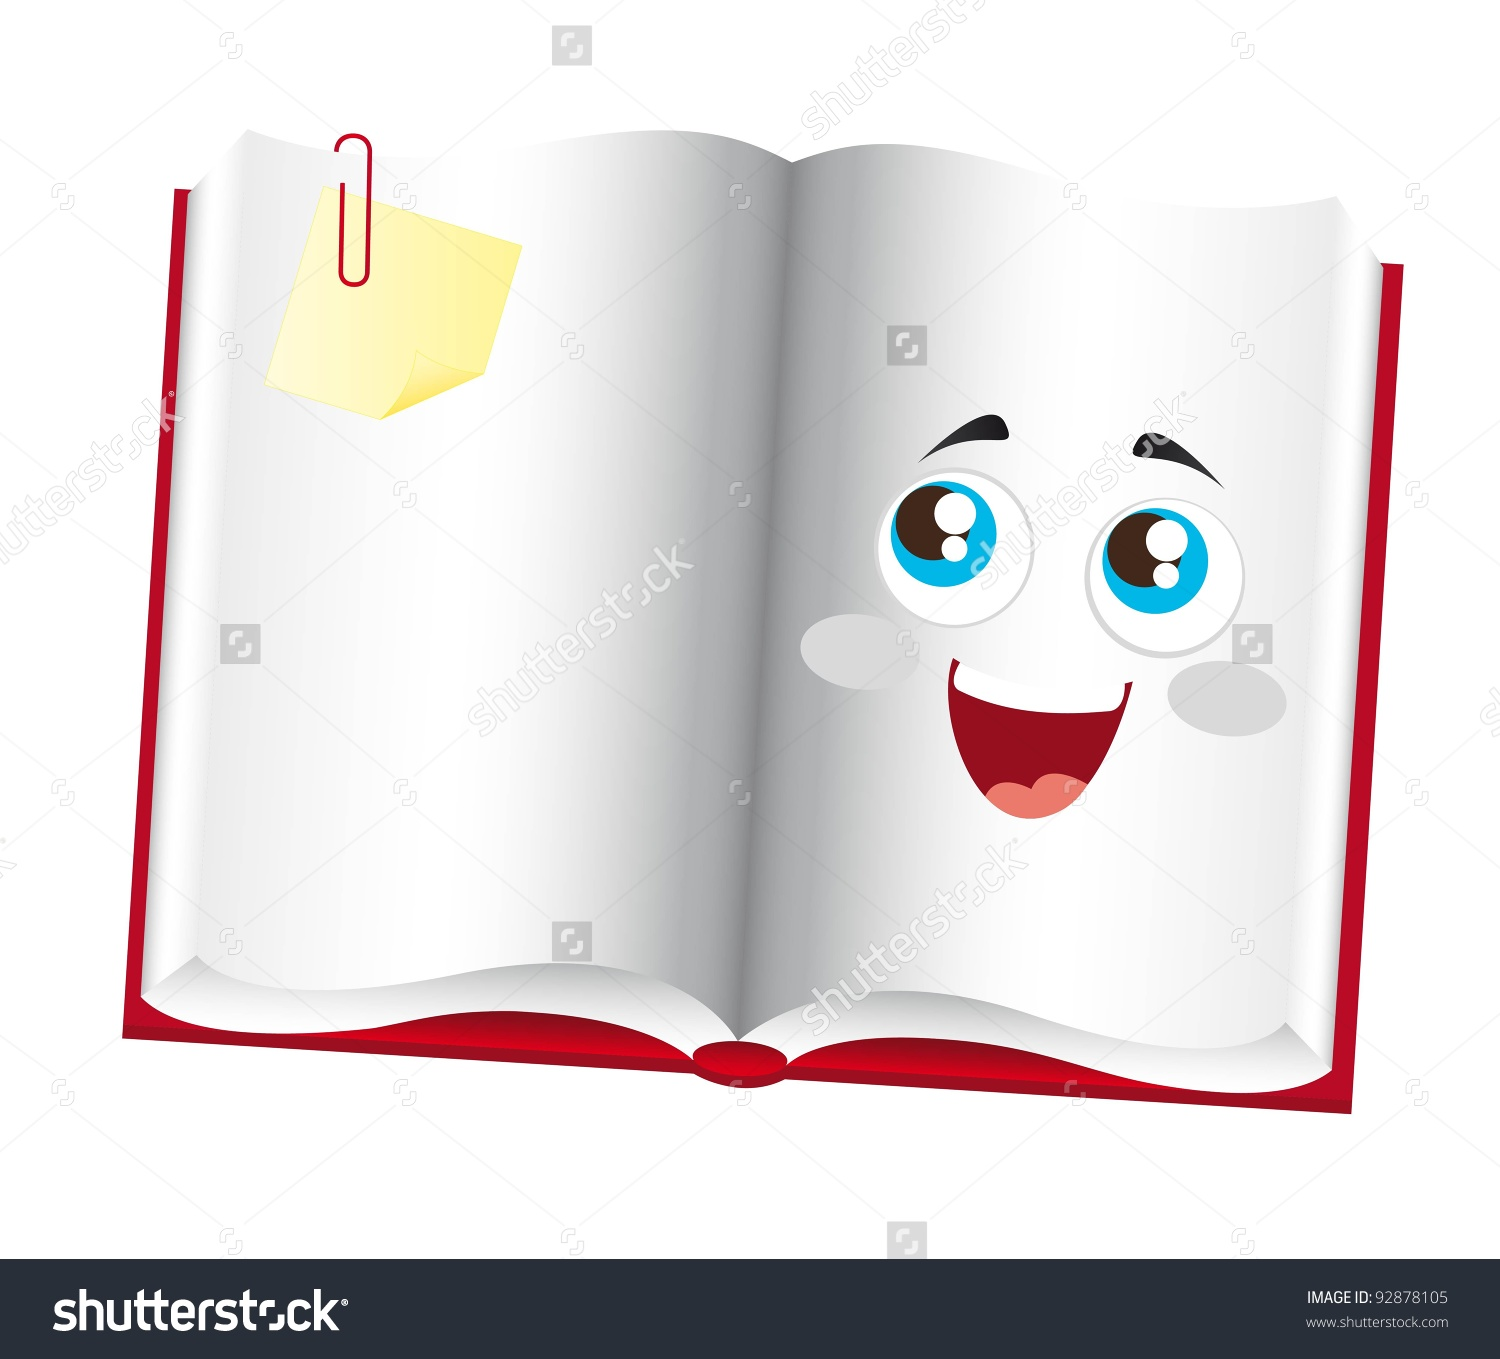 Eyes in book clipart banner freeuse library Cute Book Cartoon Eyes Over White Stock Vector 92878105 - Shutterstock banner freeuse library